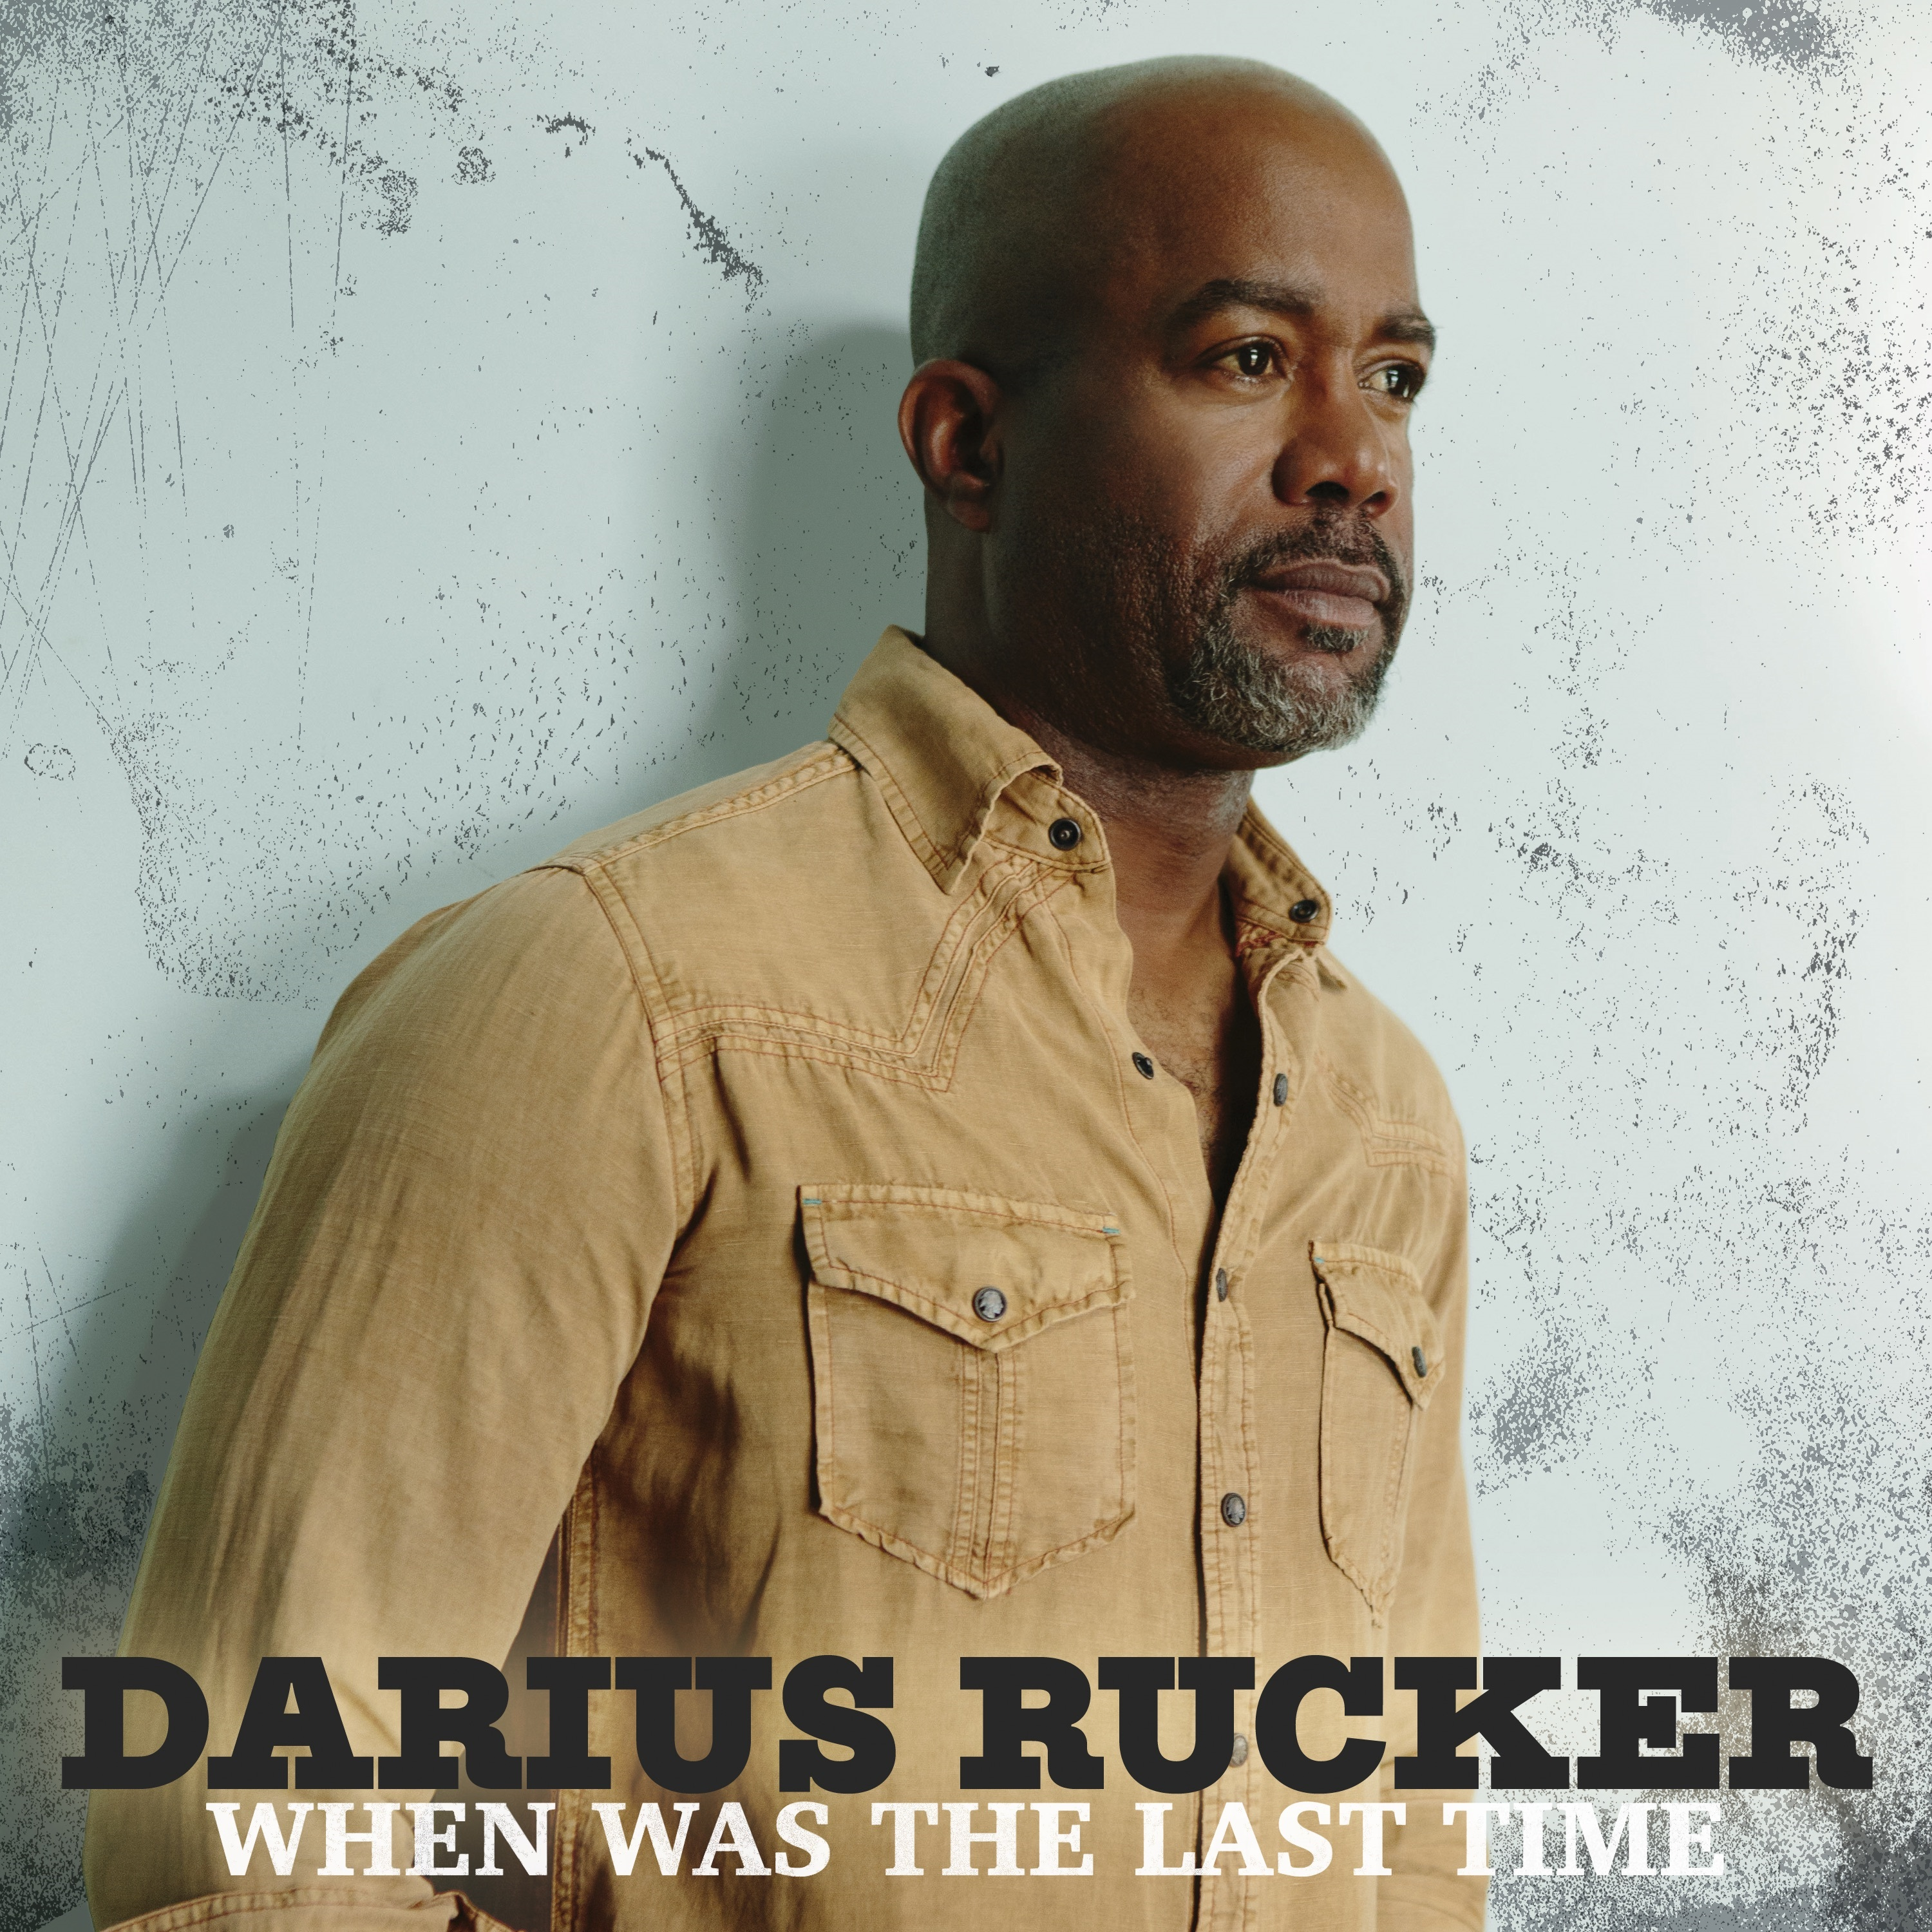 WIN an Autographed Copy of Darius Rucker's 'When Was The Last Time'